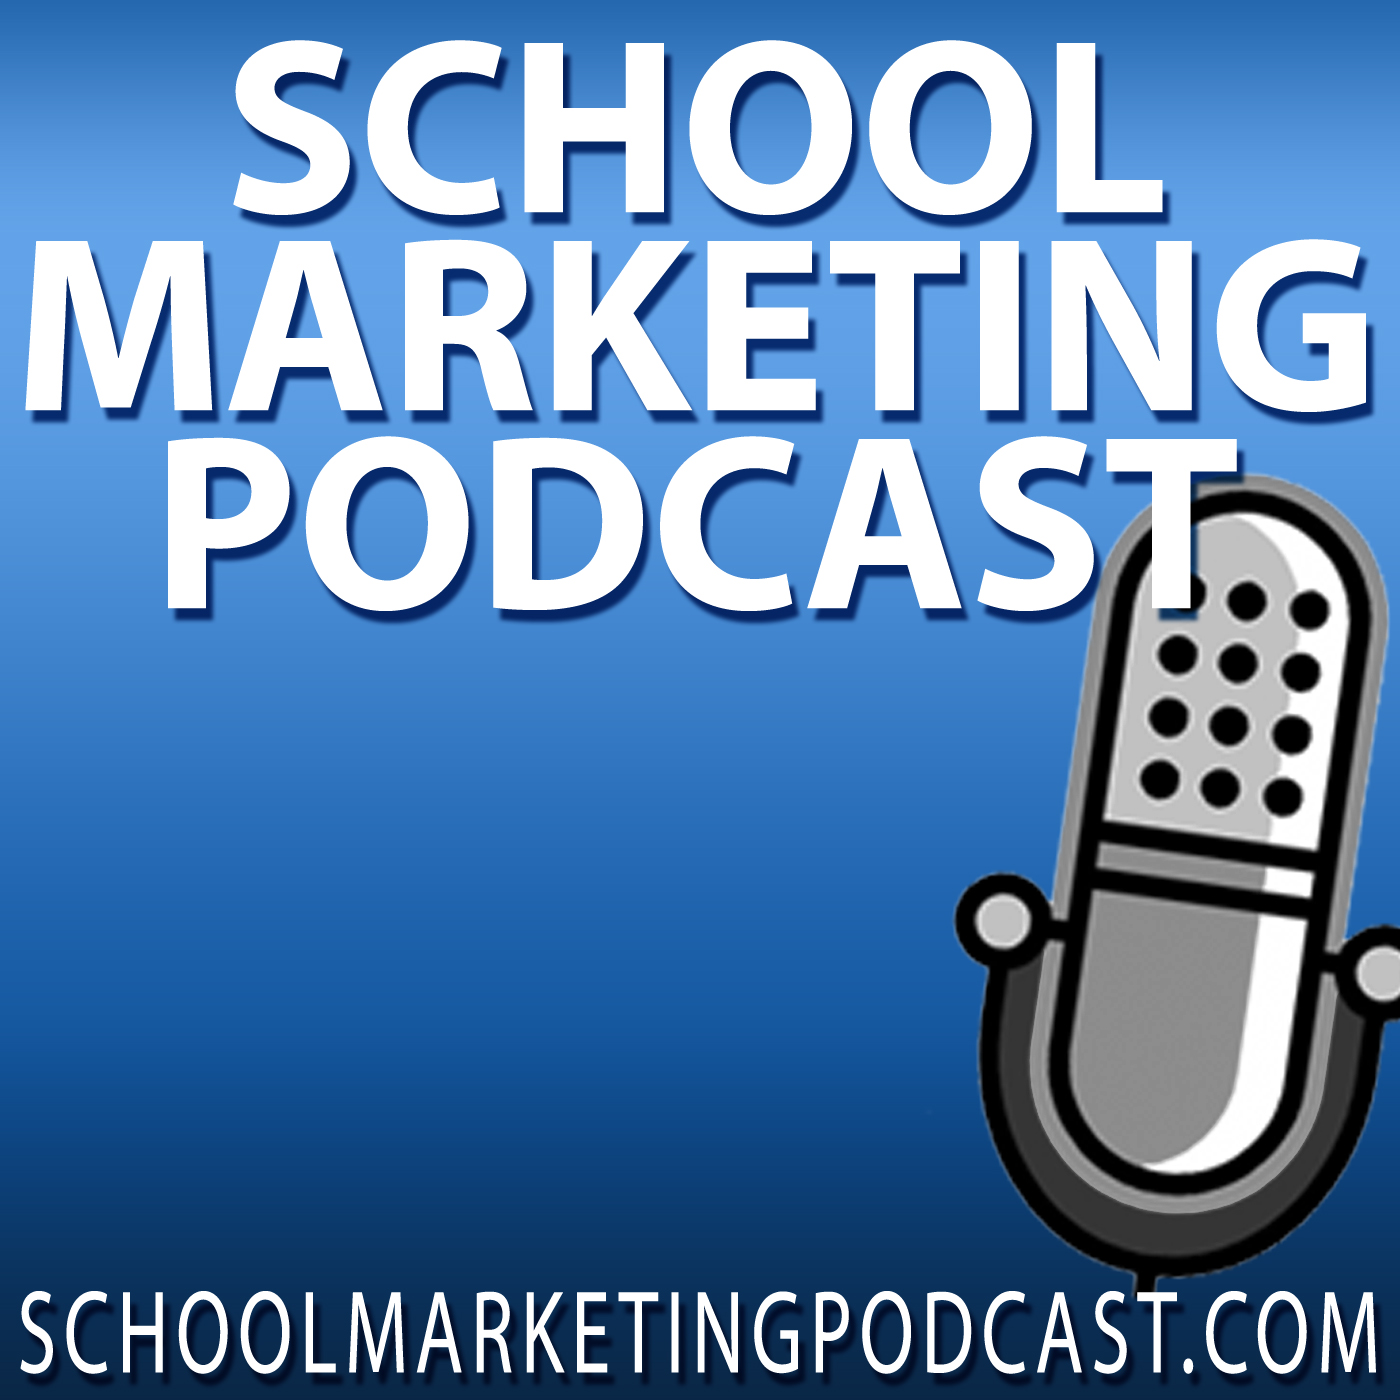 School Marketing Podcast [Private & Christian School]